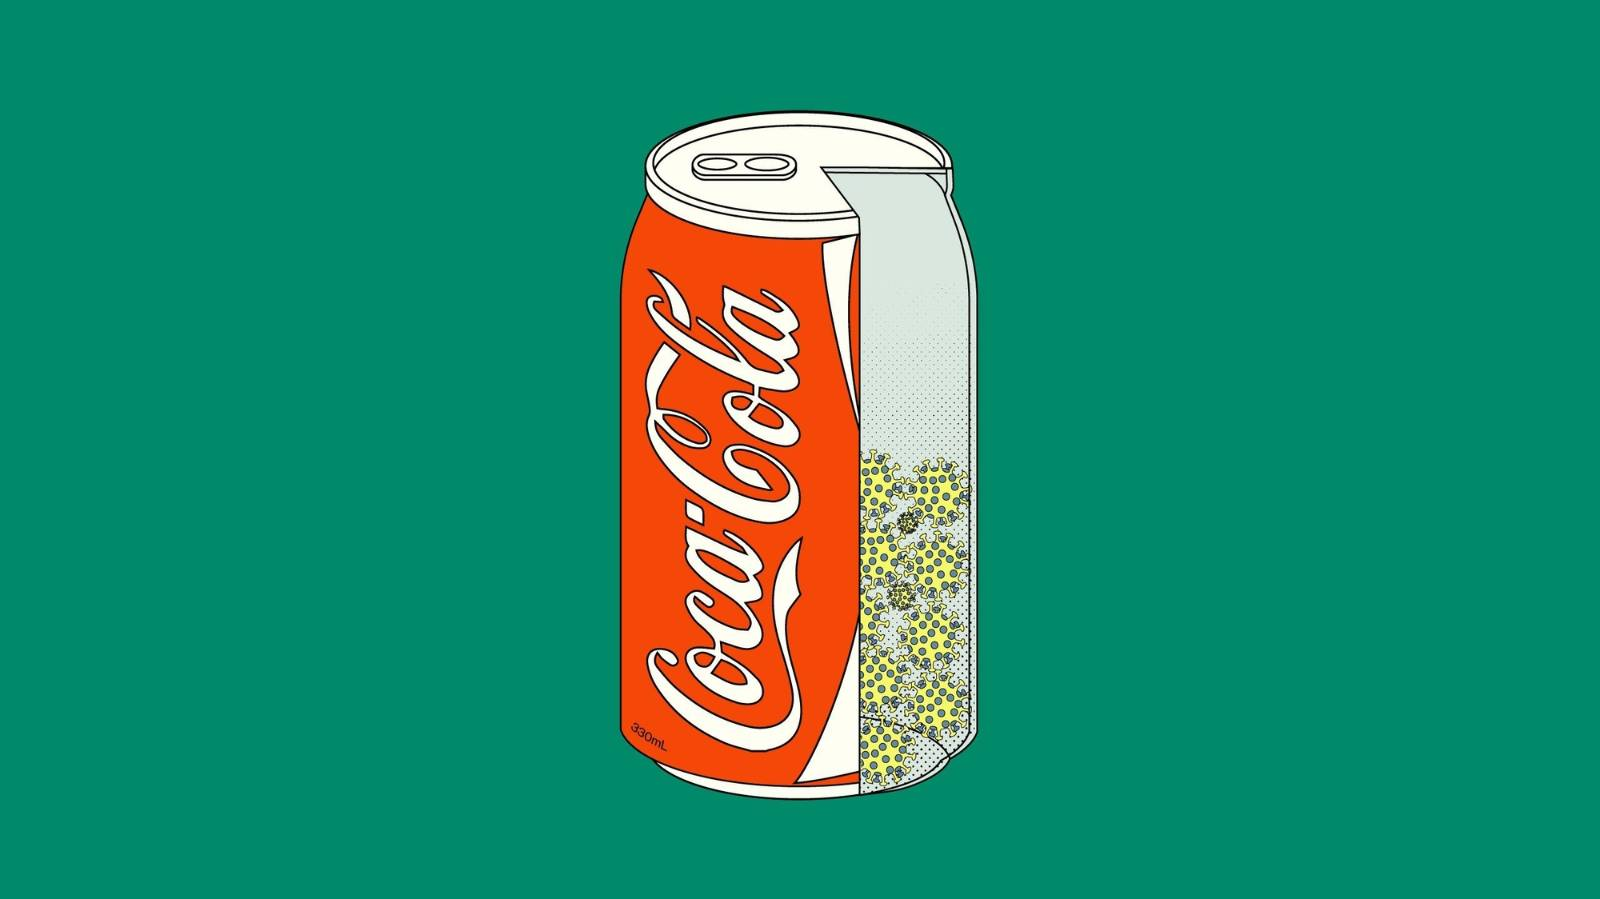 What glitter and a can of Coke have to do with Covid-19 in New Zealand